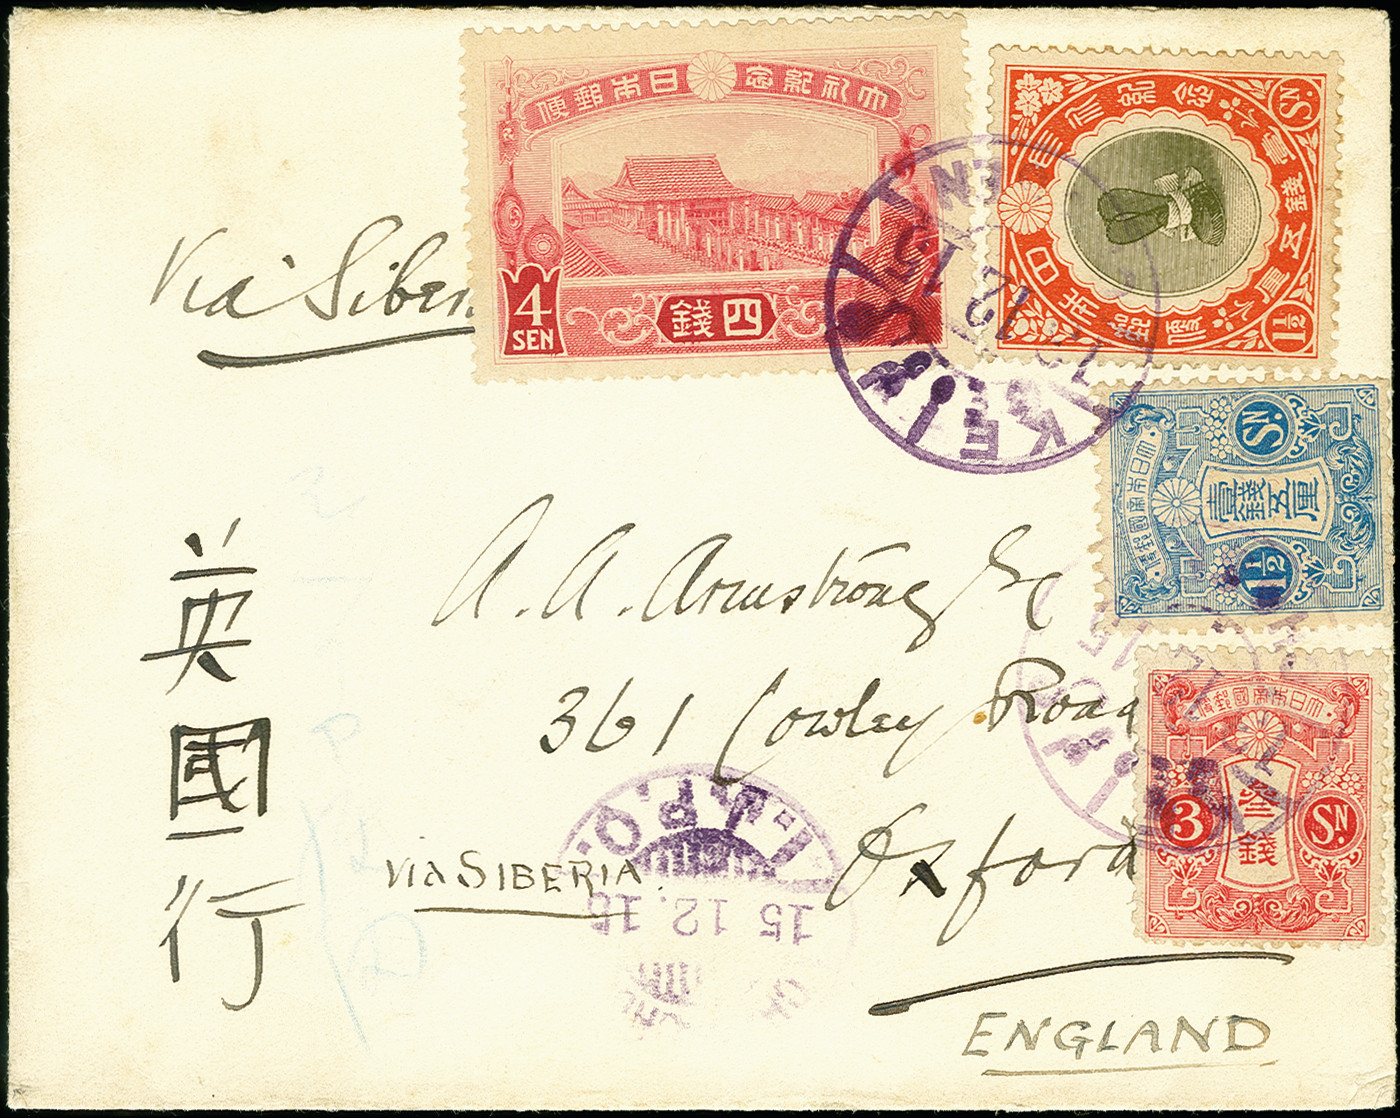 Lot 2155 - Japan Japan - Post in Korea -  Heinrich Koehler Auktionen 375rd Heinrich Köhler auction - Day 1